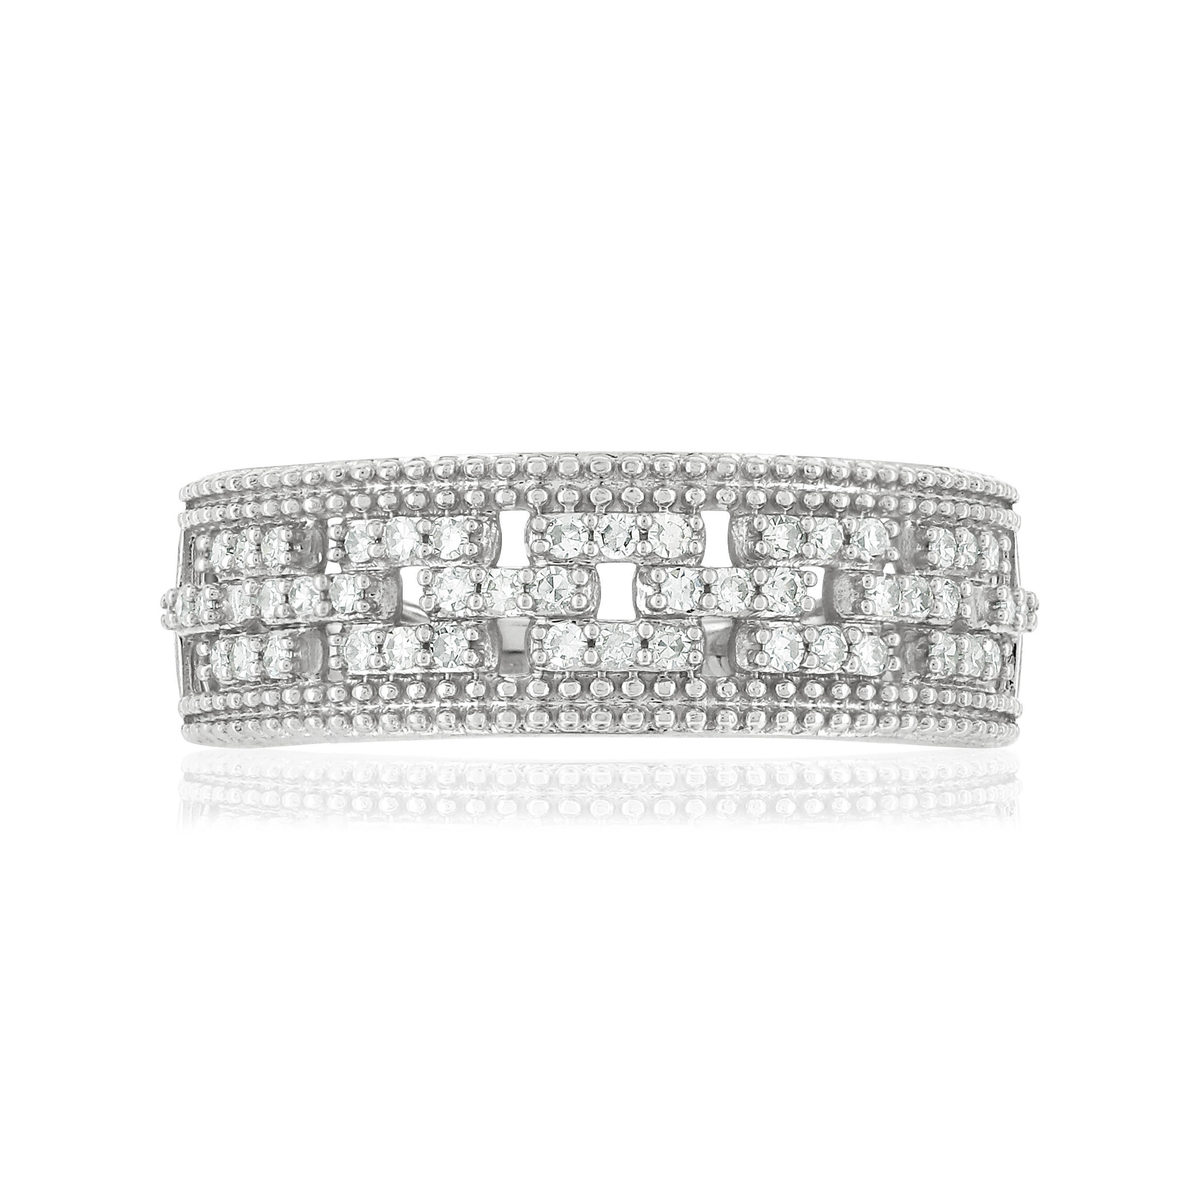 Bague MATY Or 750 blanc Diamants blancs - vue 3